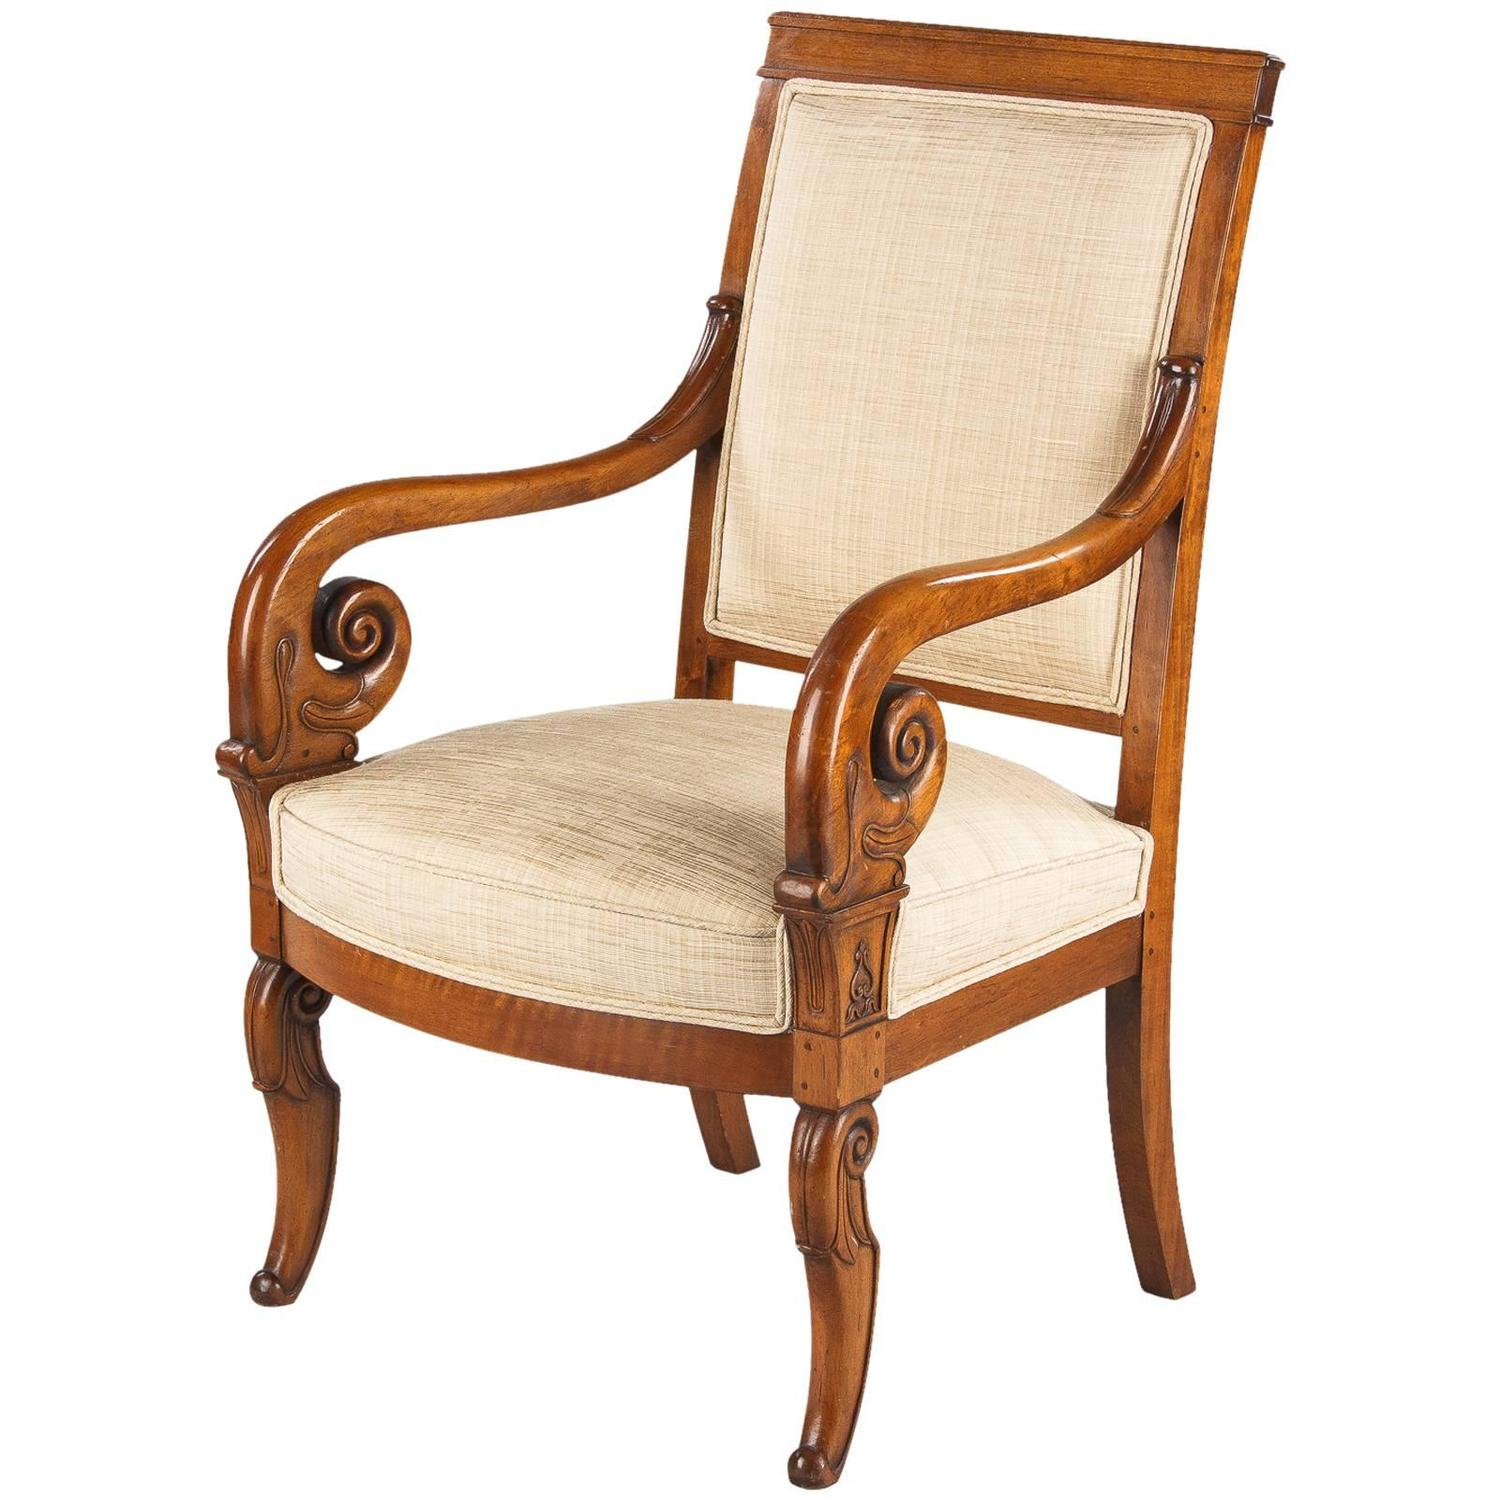 French Restauration Style Cherrywood Armchair 1920 At 1stdibs